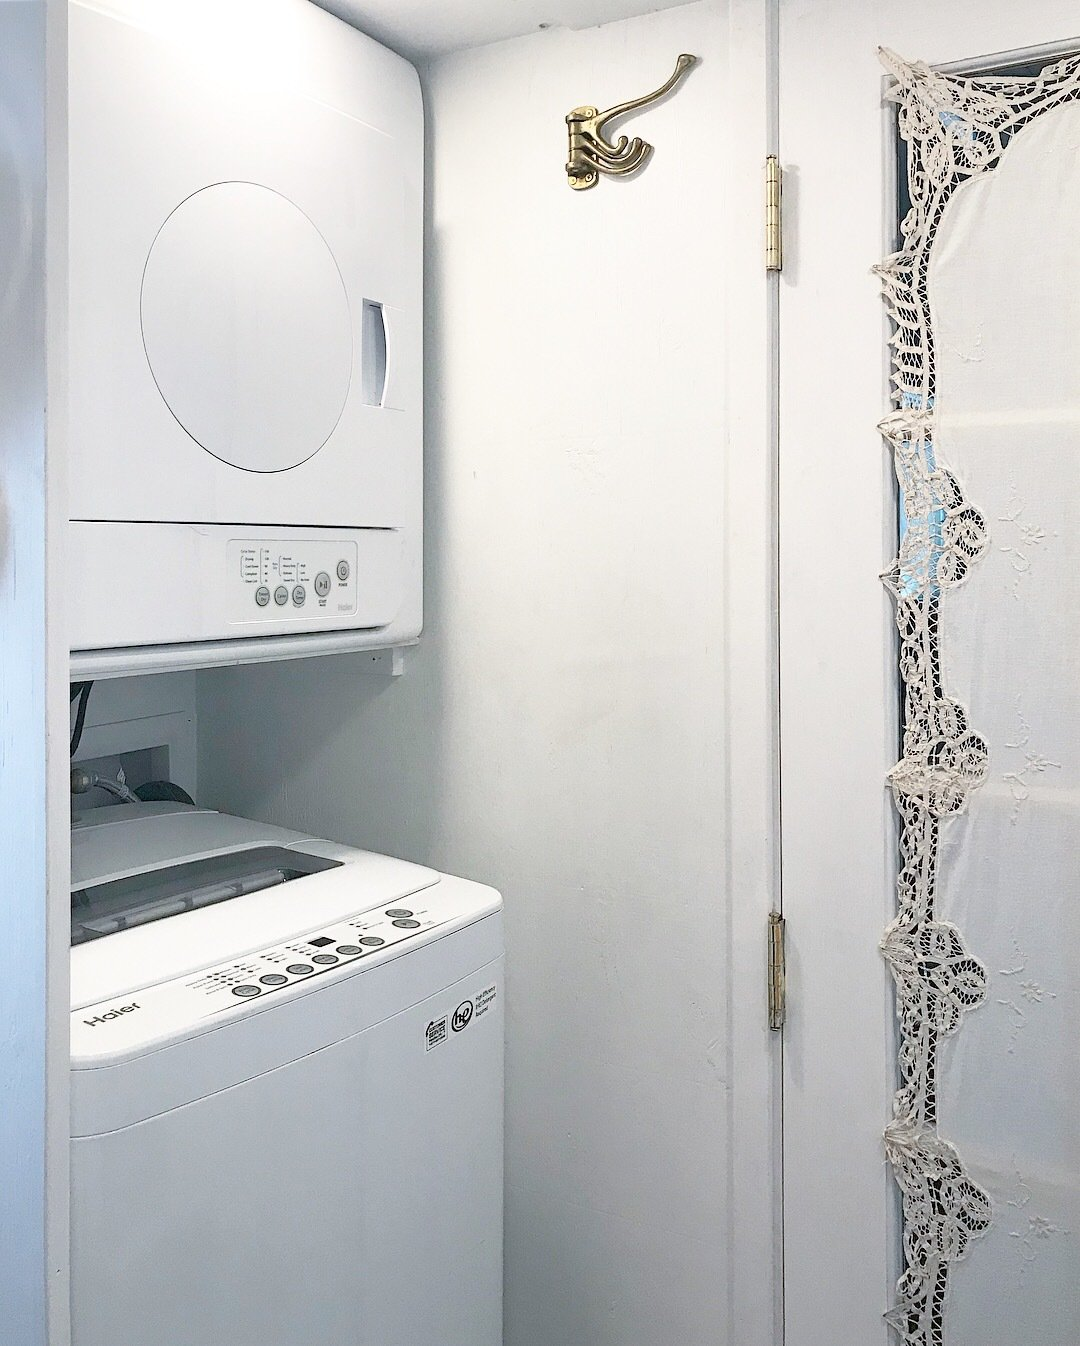 Her Tiny Home washer and dryer